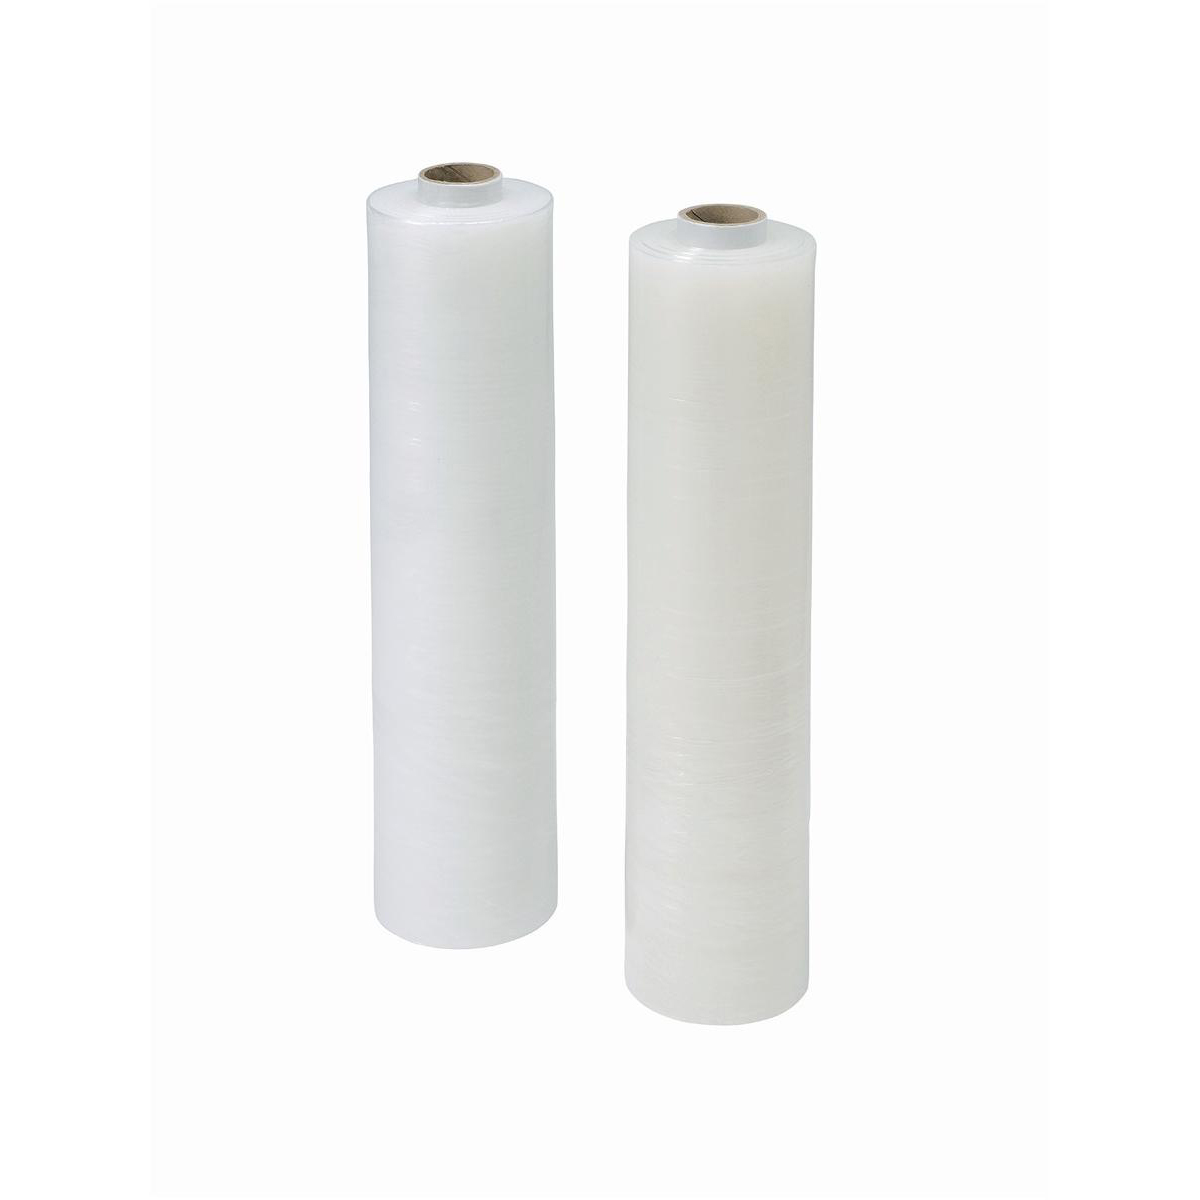 Stretch Film Blown 34 micron 400mmx200m Clear  [Pack 6]